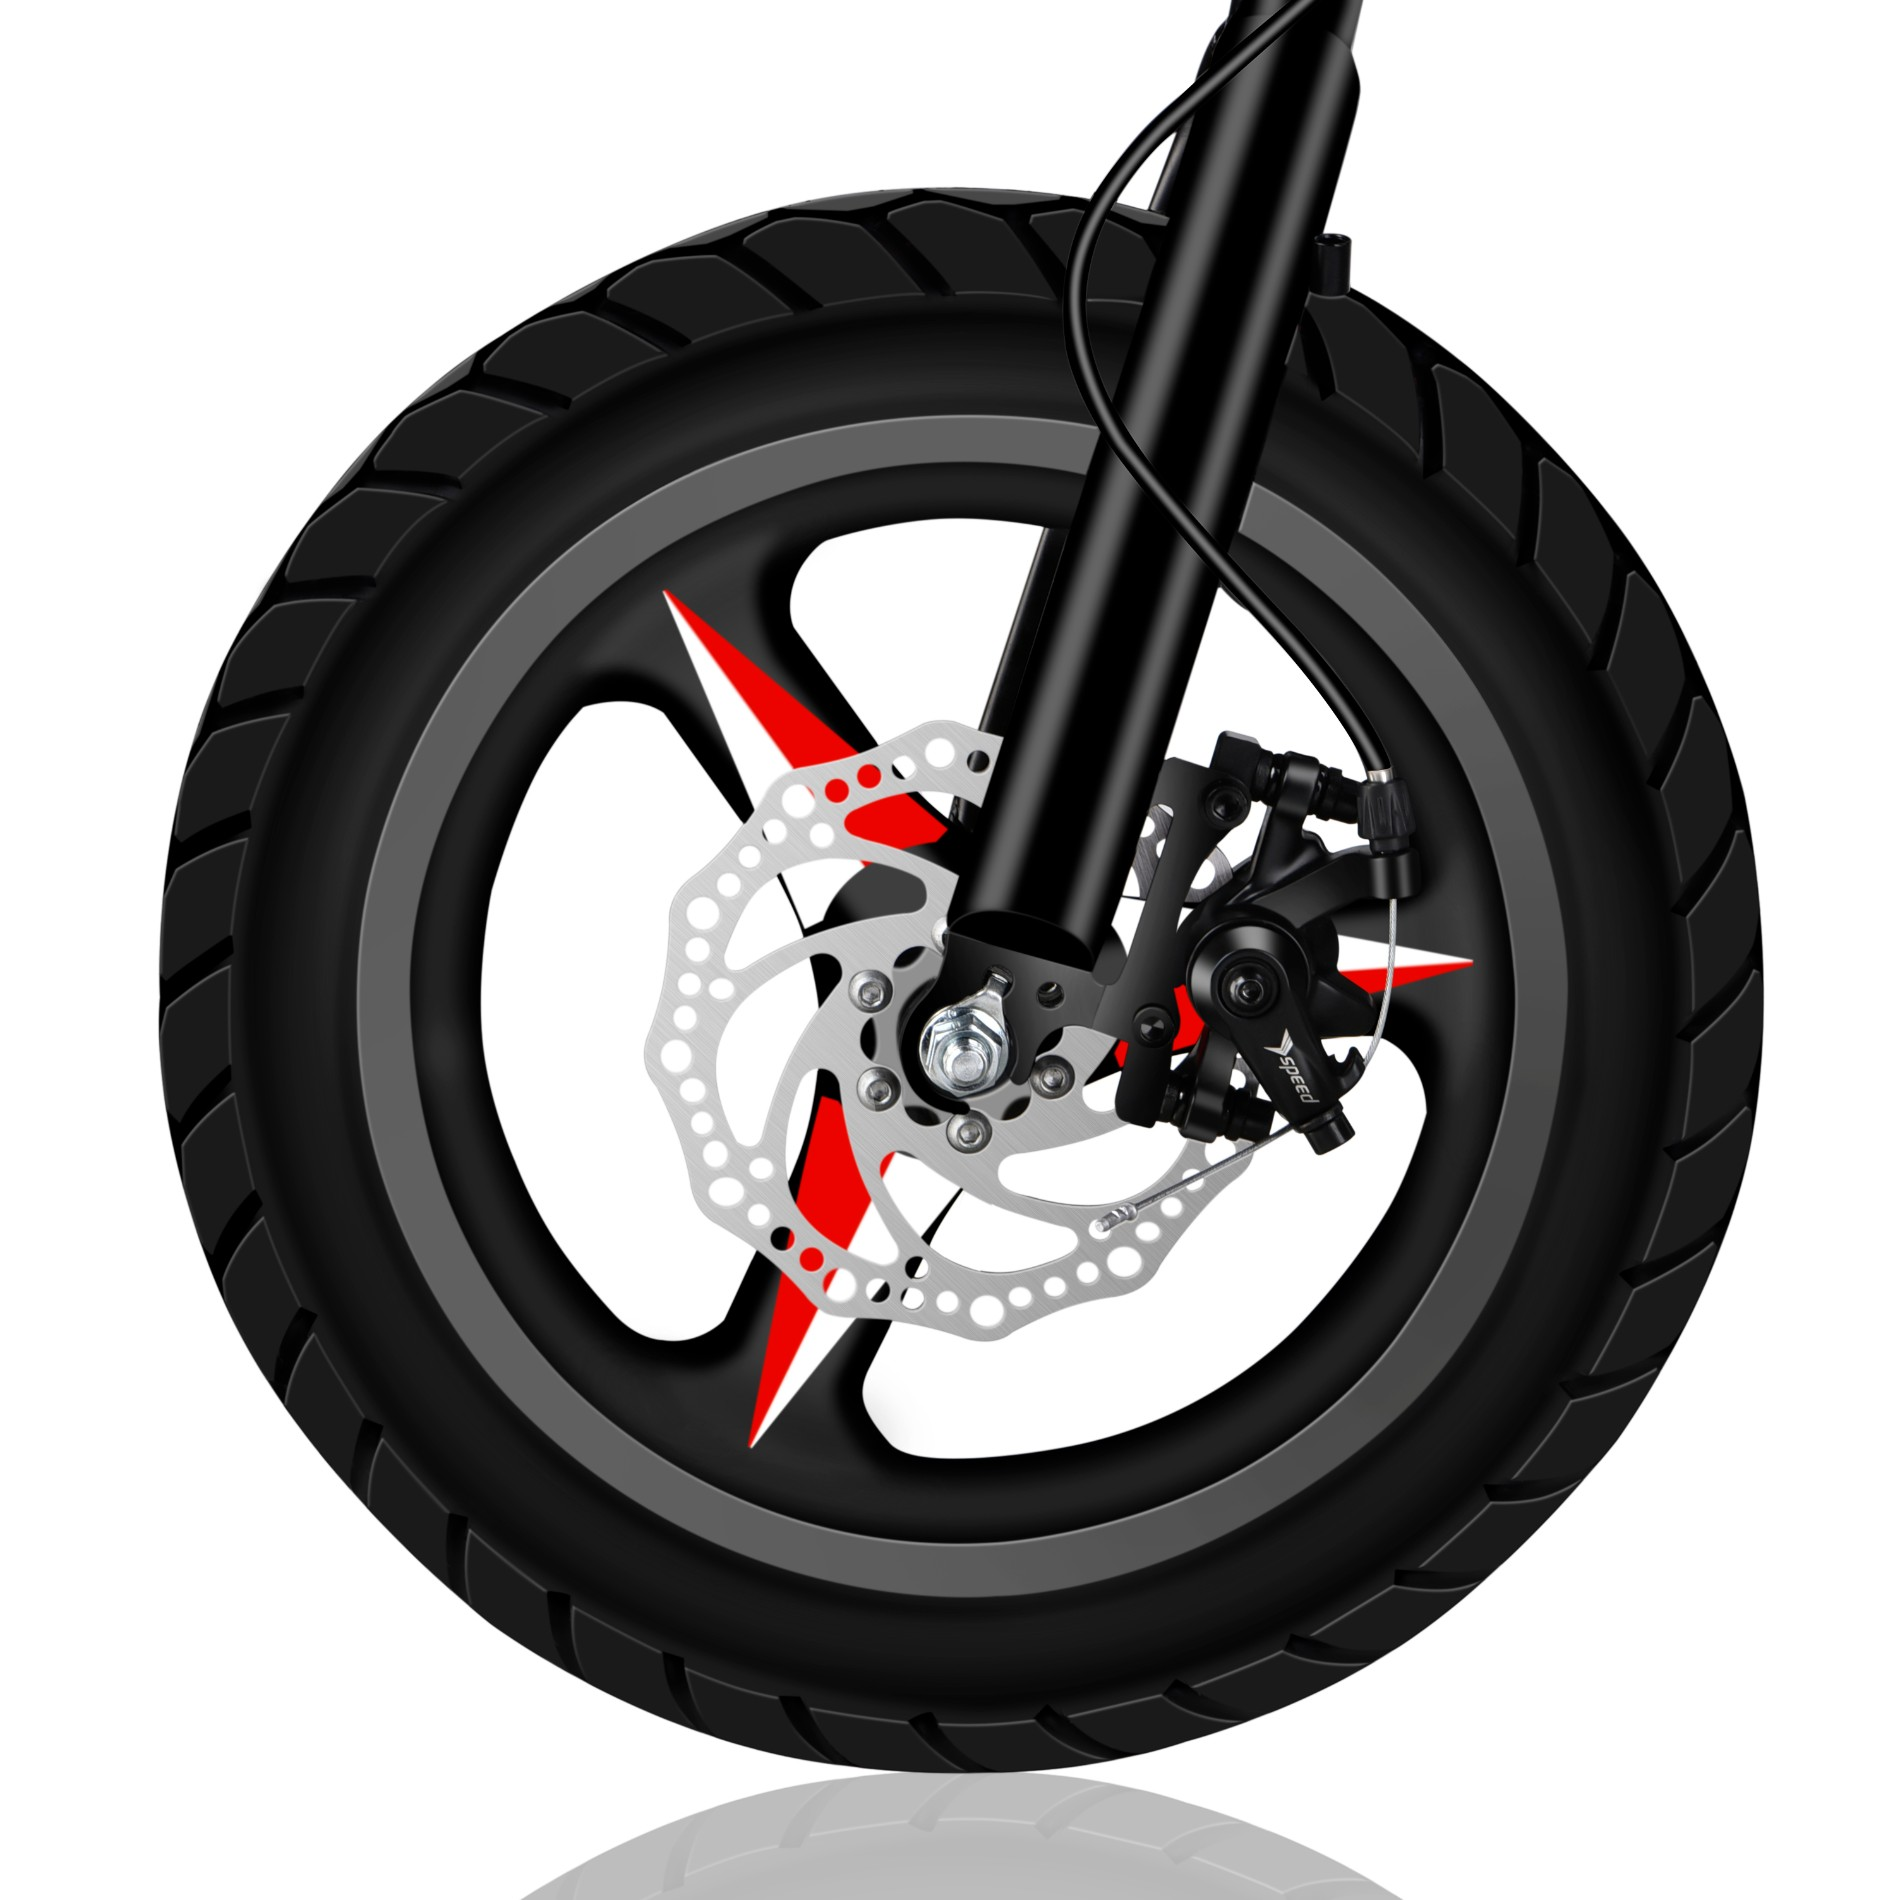 New Design Electric Foldable Bicycle Electric Bike En15194 Approved Manufacturers, New Design Electric Foldable Bicycle Electric Bike En15194 Approved Factory, Supply New Design Electric Foldable Bicycle Electric Bike En15194 Approved